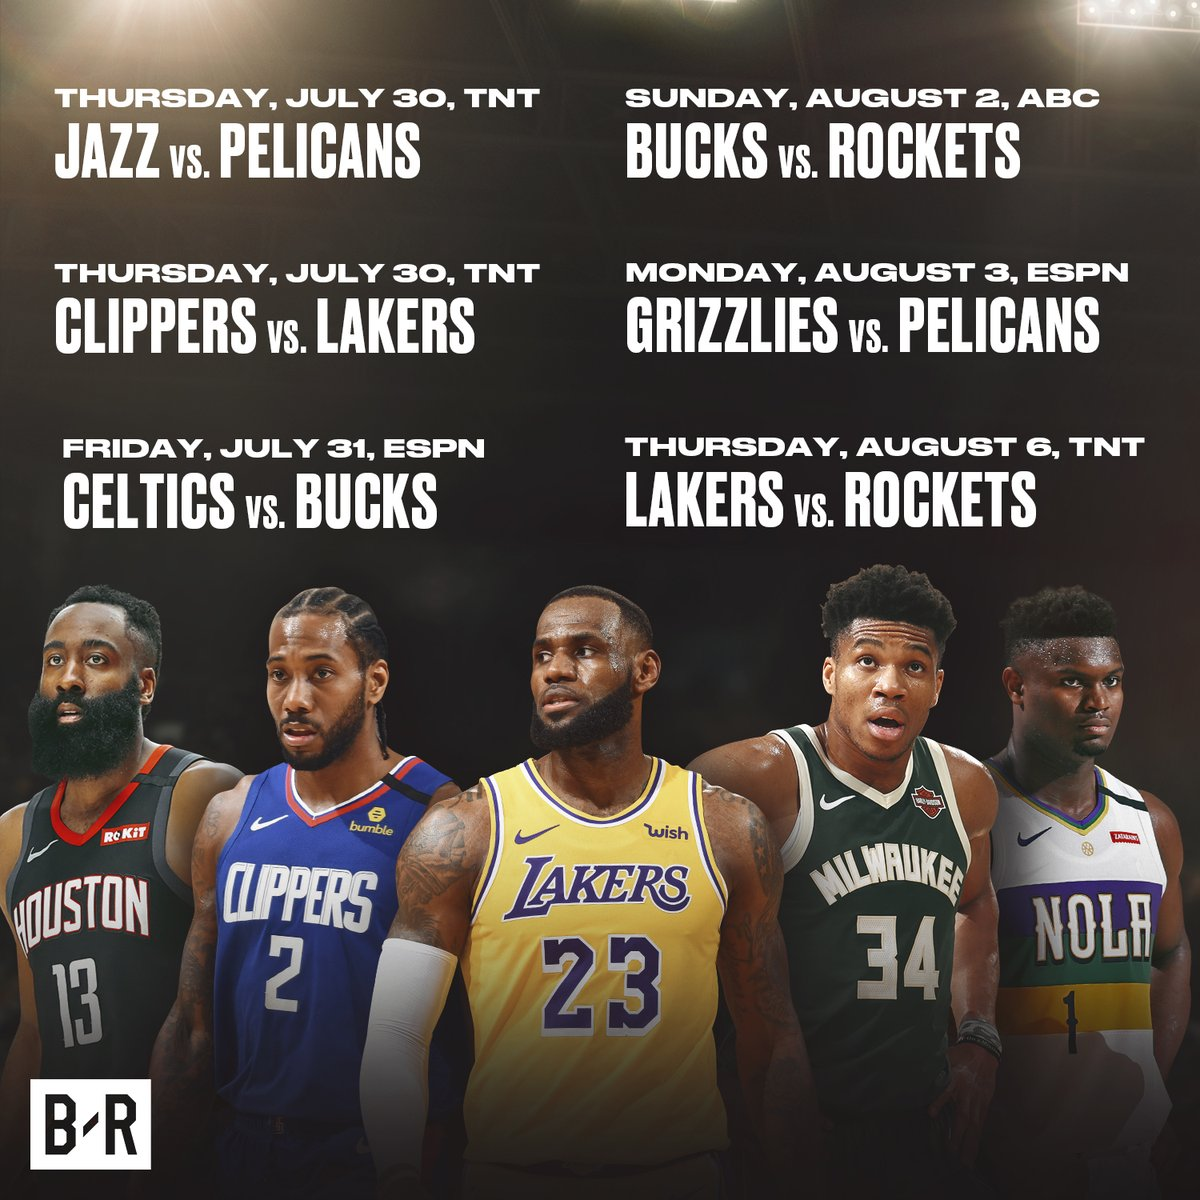 🚨 New NBA schedule released 🚨 Jazz-Pelicans and Lakers-Clippers to restart the season on July 30 on @NBAonTNT